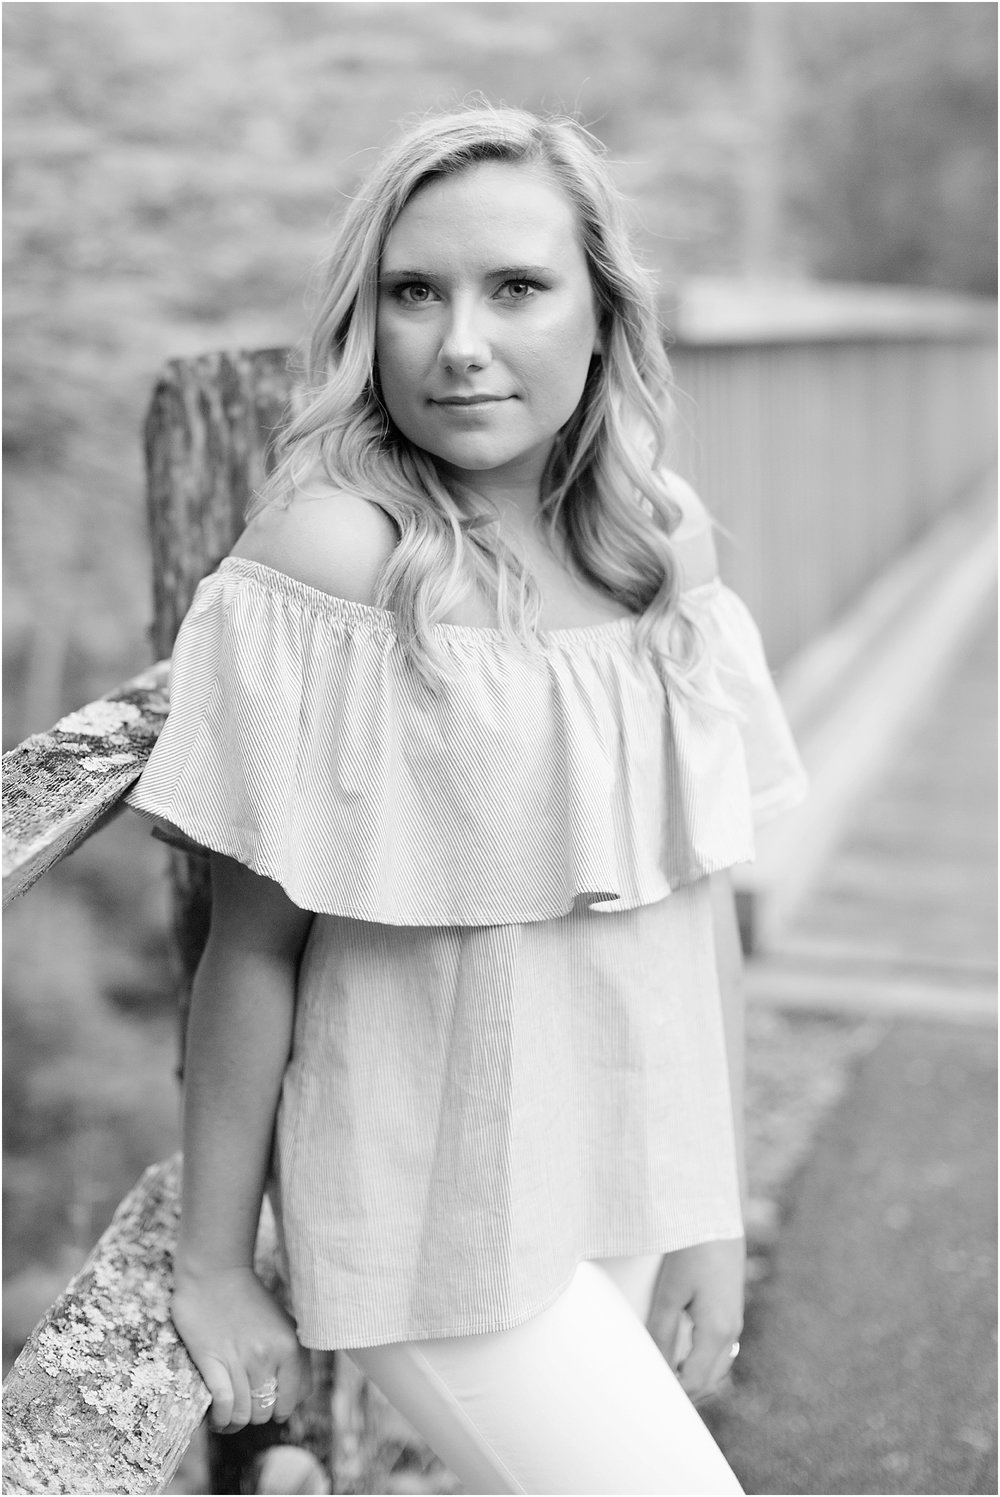 Senior Portrait Session | Ashley Powell Photography | Roanoke, VA Photographer | Radford University